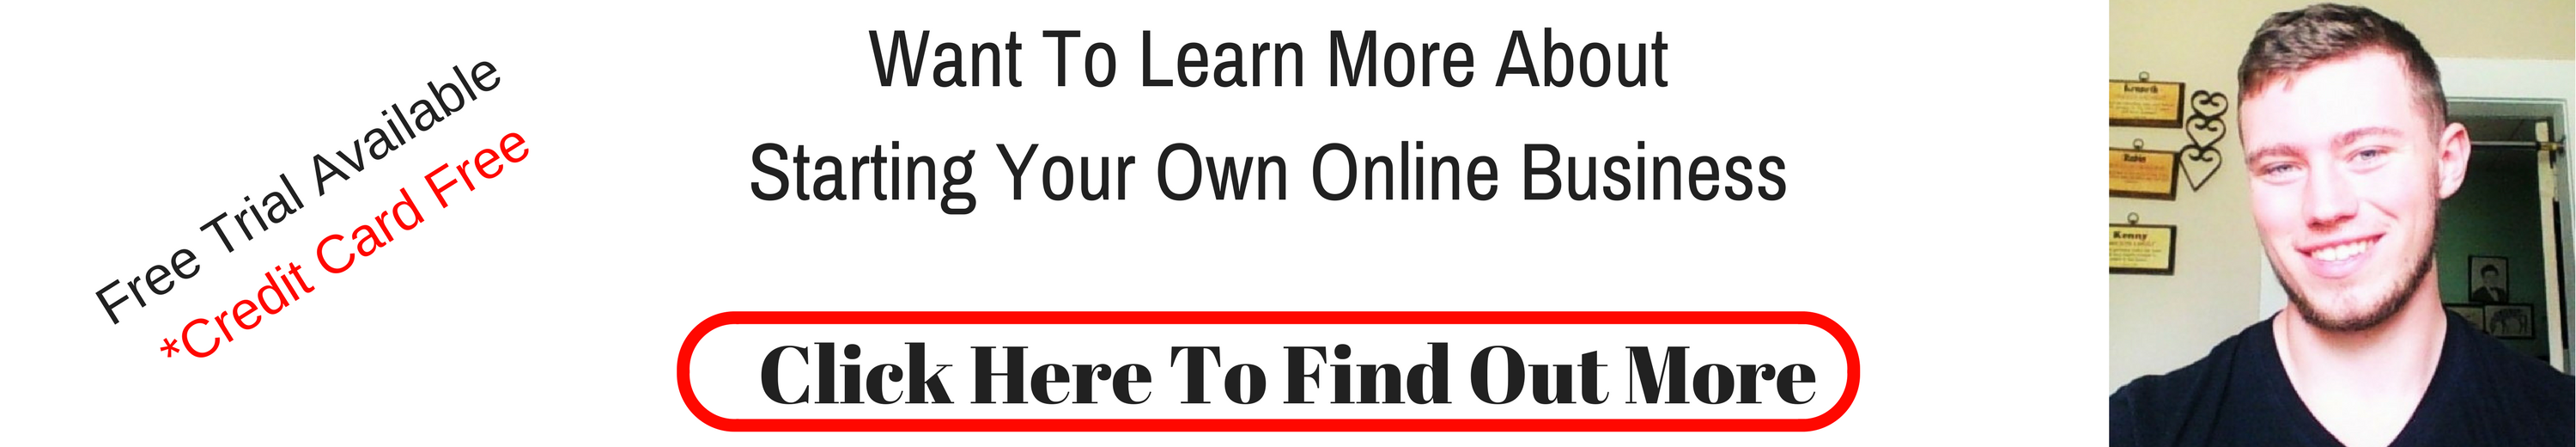 Click Here To learn More About Starting Your Own Online Business